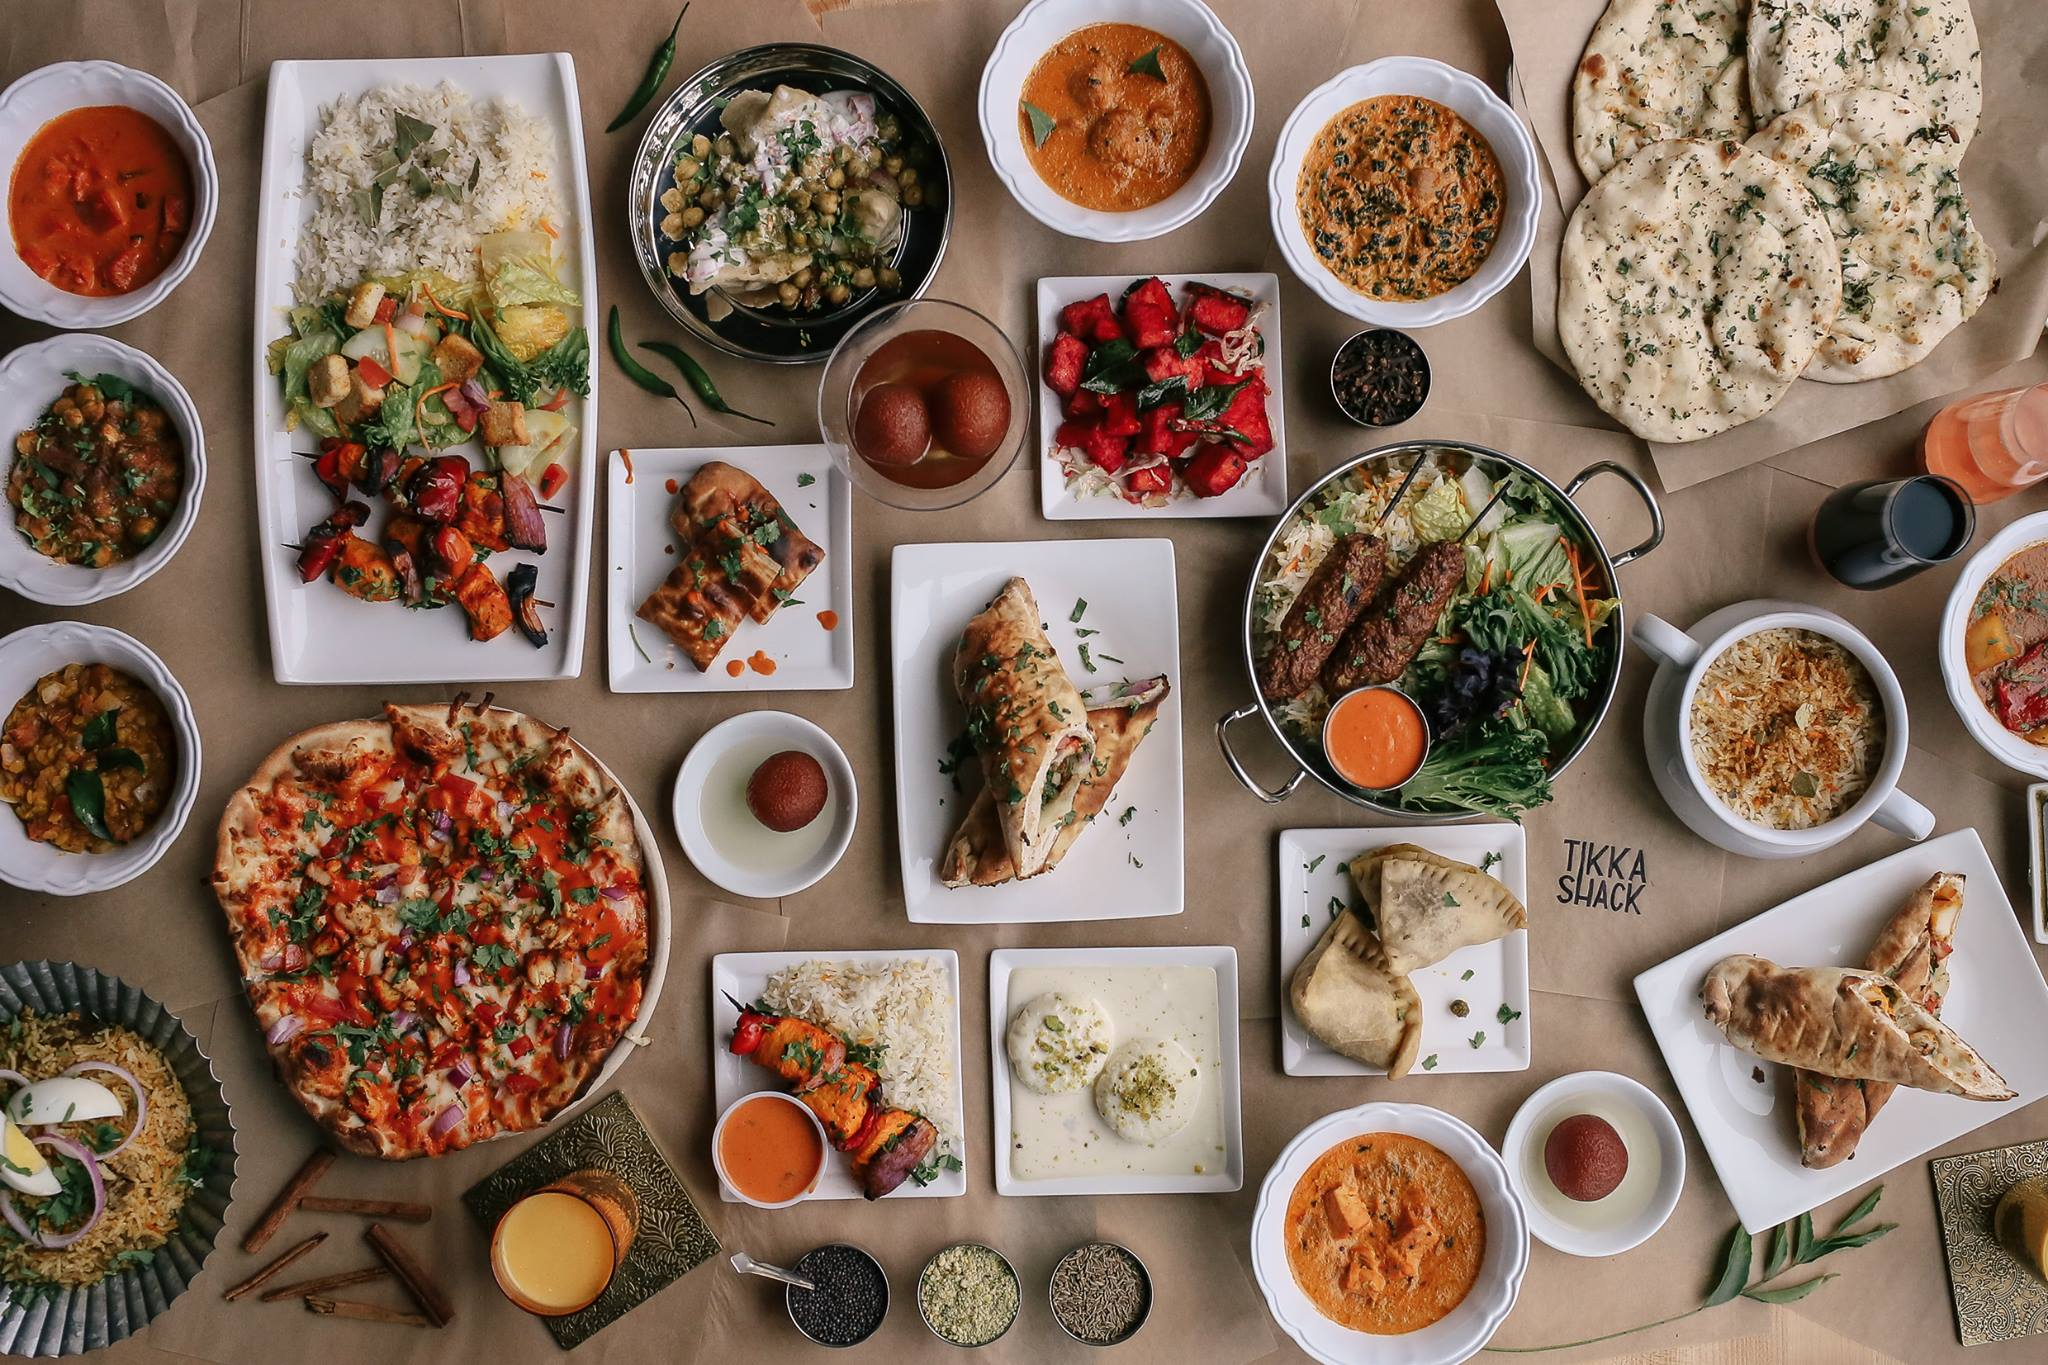 A tabled filed with curries, breads, rice dishes and samosas from the Tikka Shack menu, on its way to Town Square.